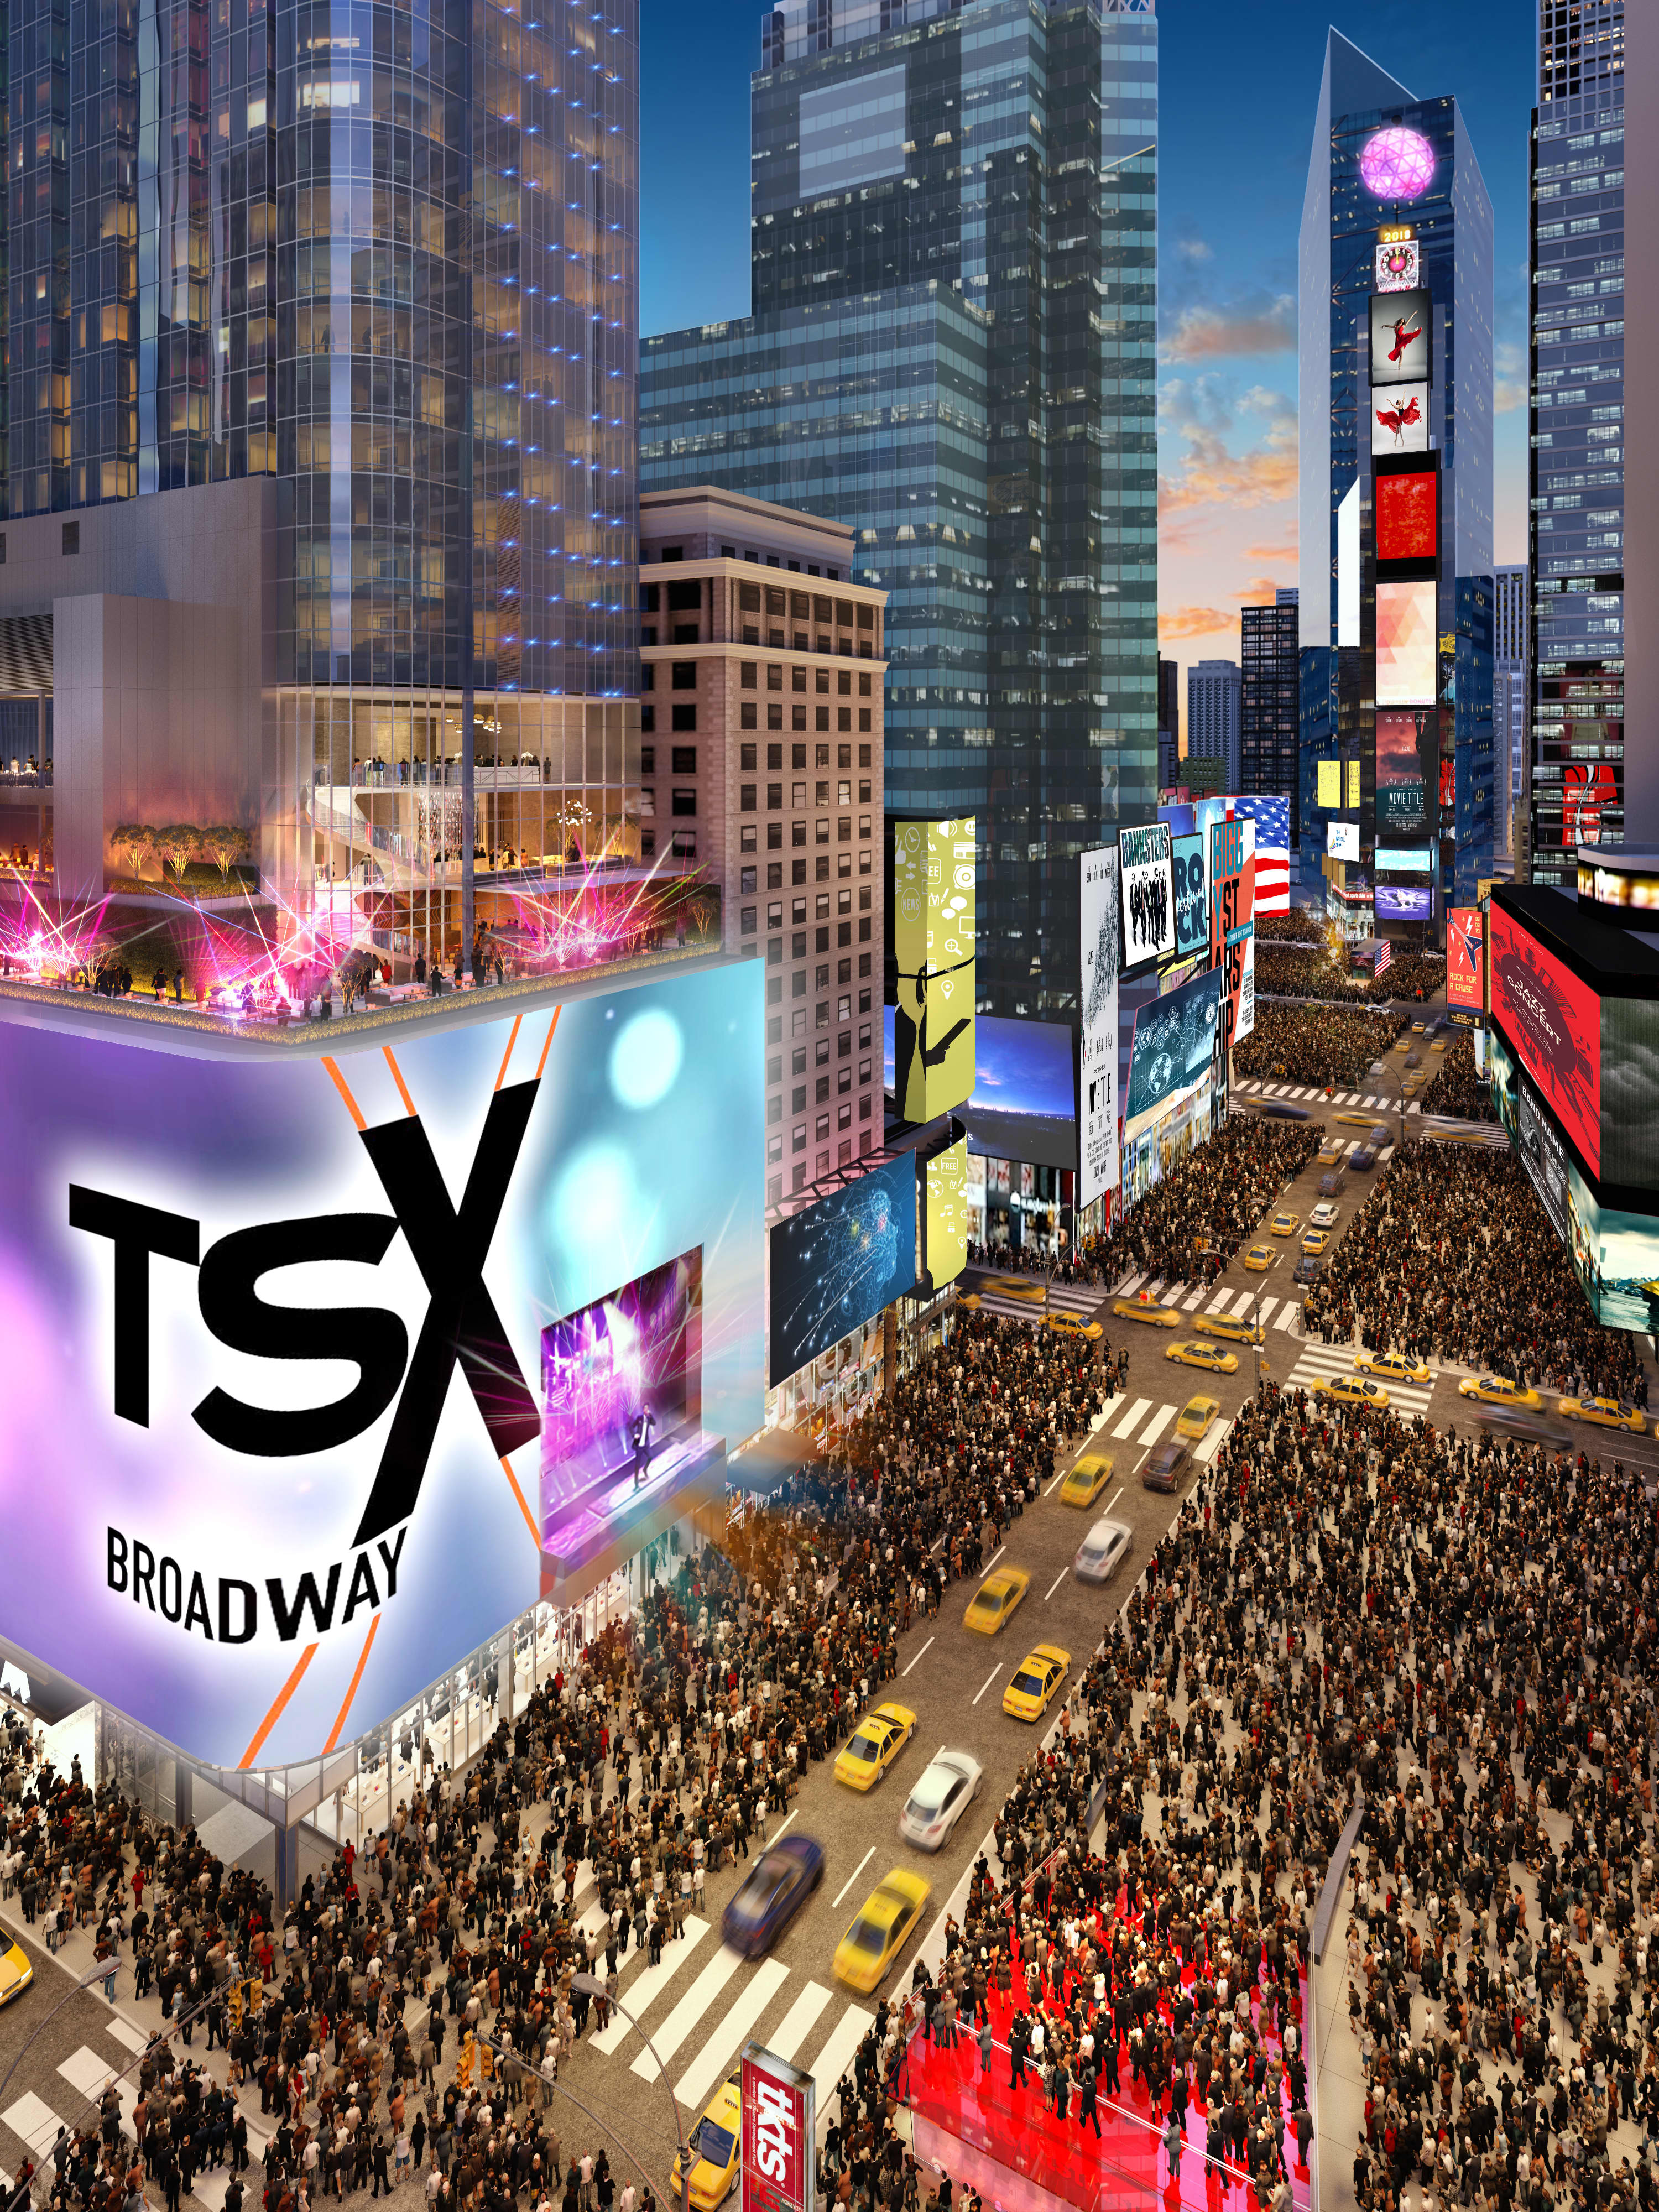 Times Square is about to get a giant new billboard called